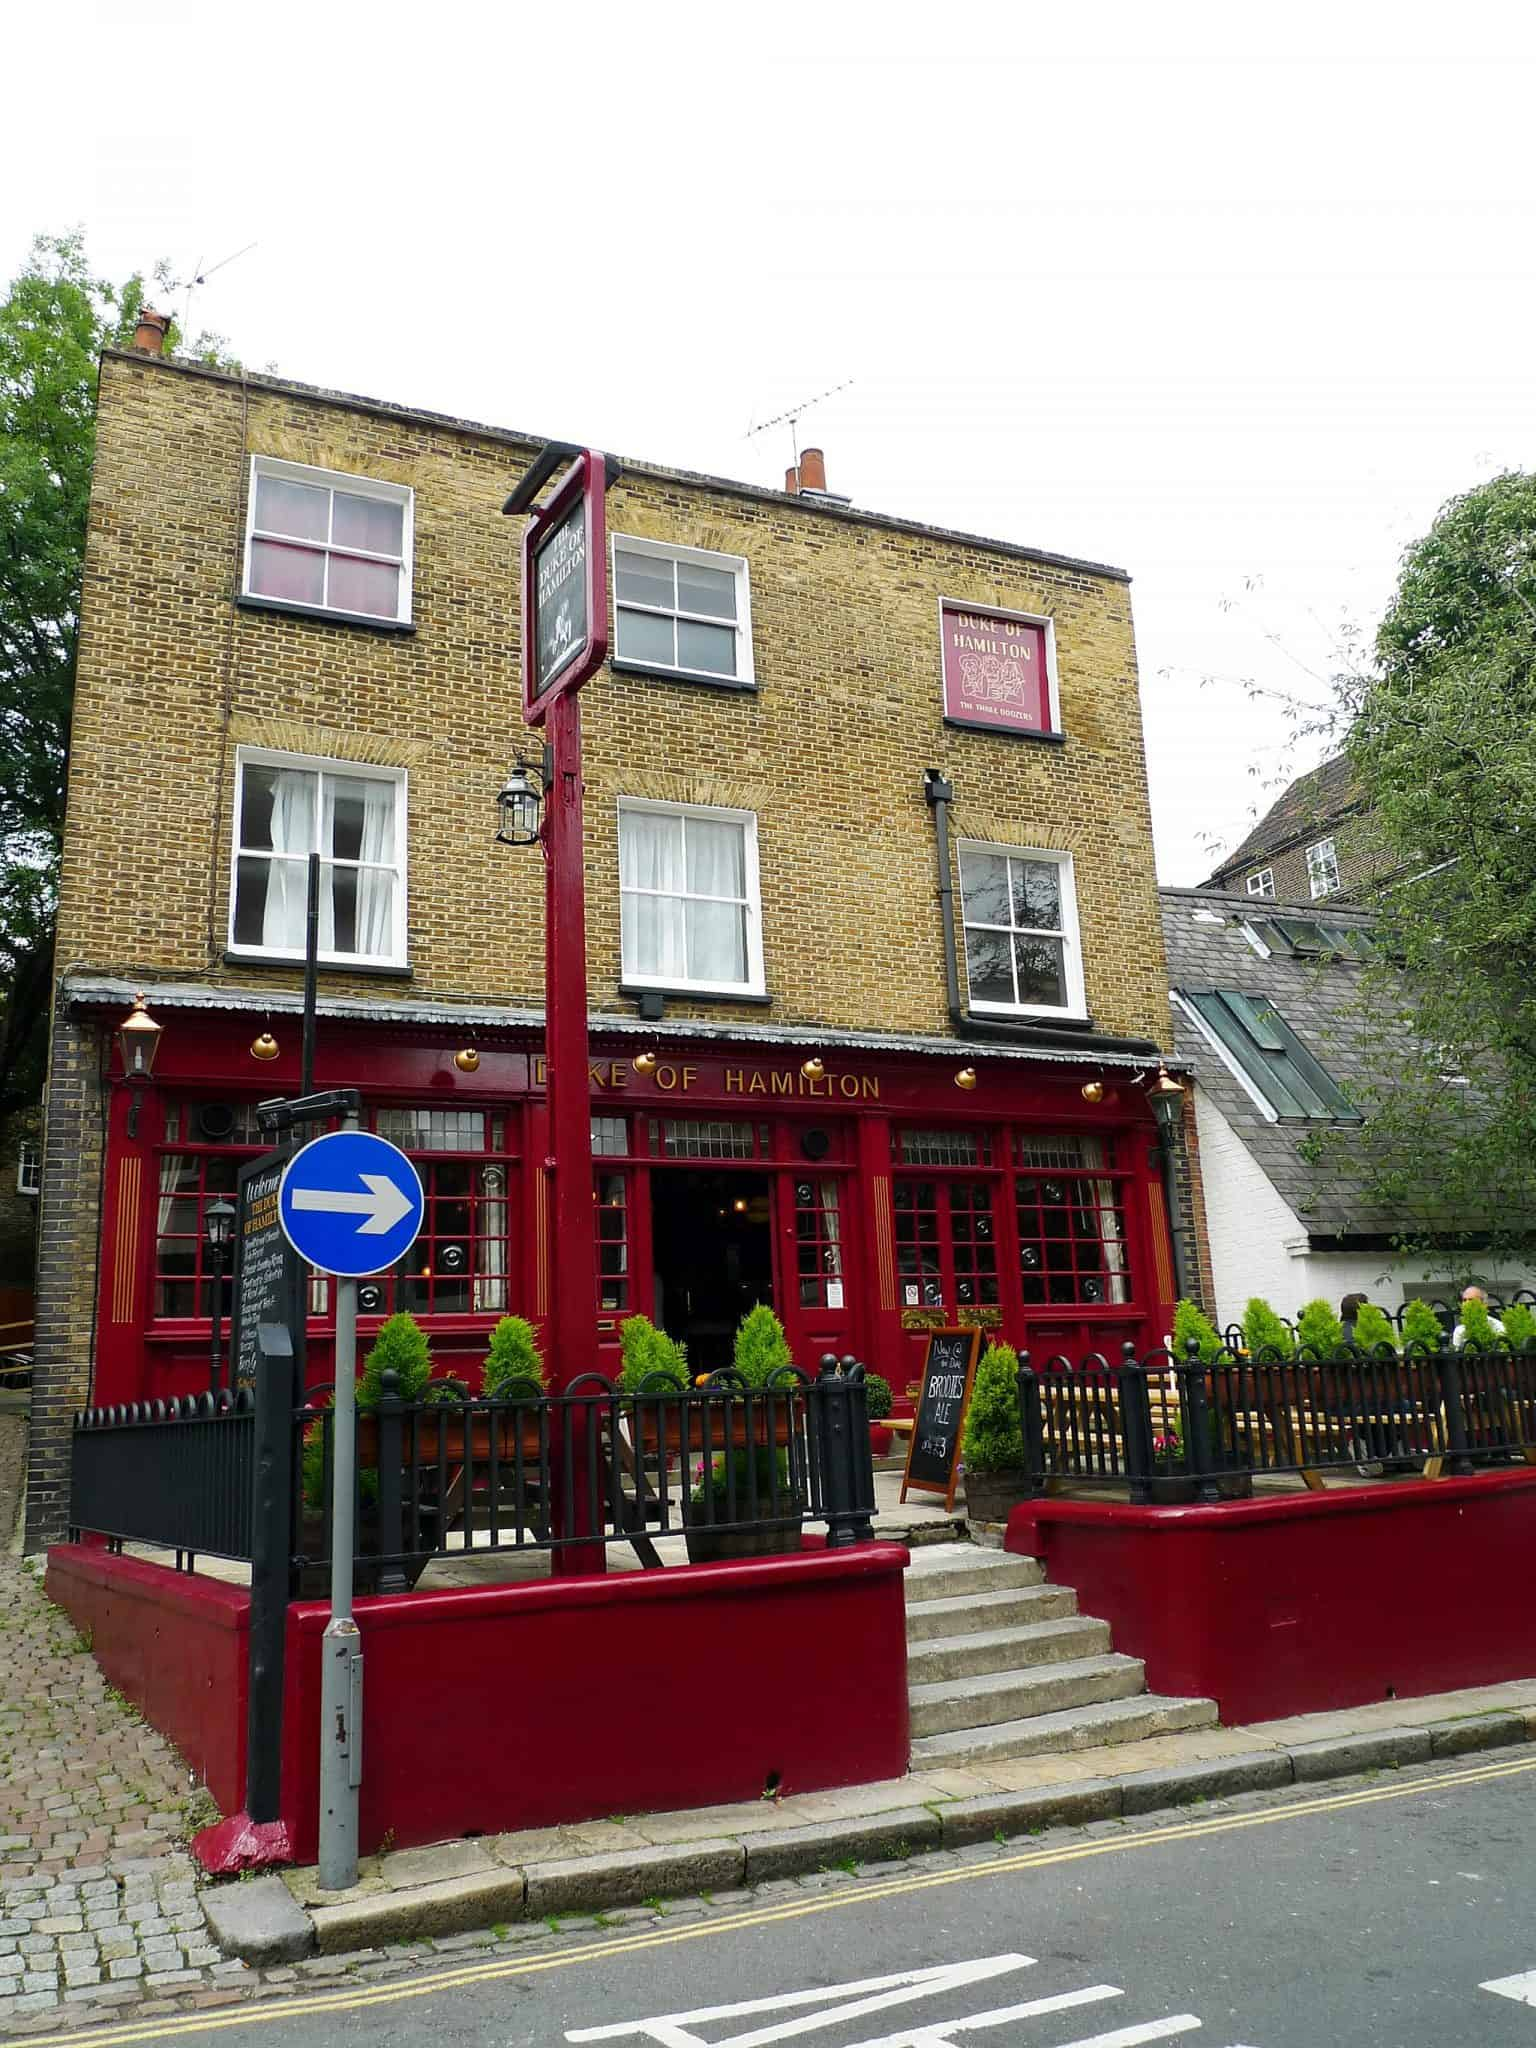 Best pubs in North London Duke_of_Hamilton,_Hampstead,_NW3_(5920907501) Ewan Munro from London, UK, CC BY-SA 2.0, via Wikimedia Commons